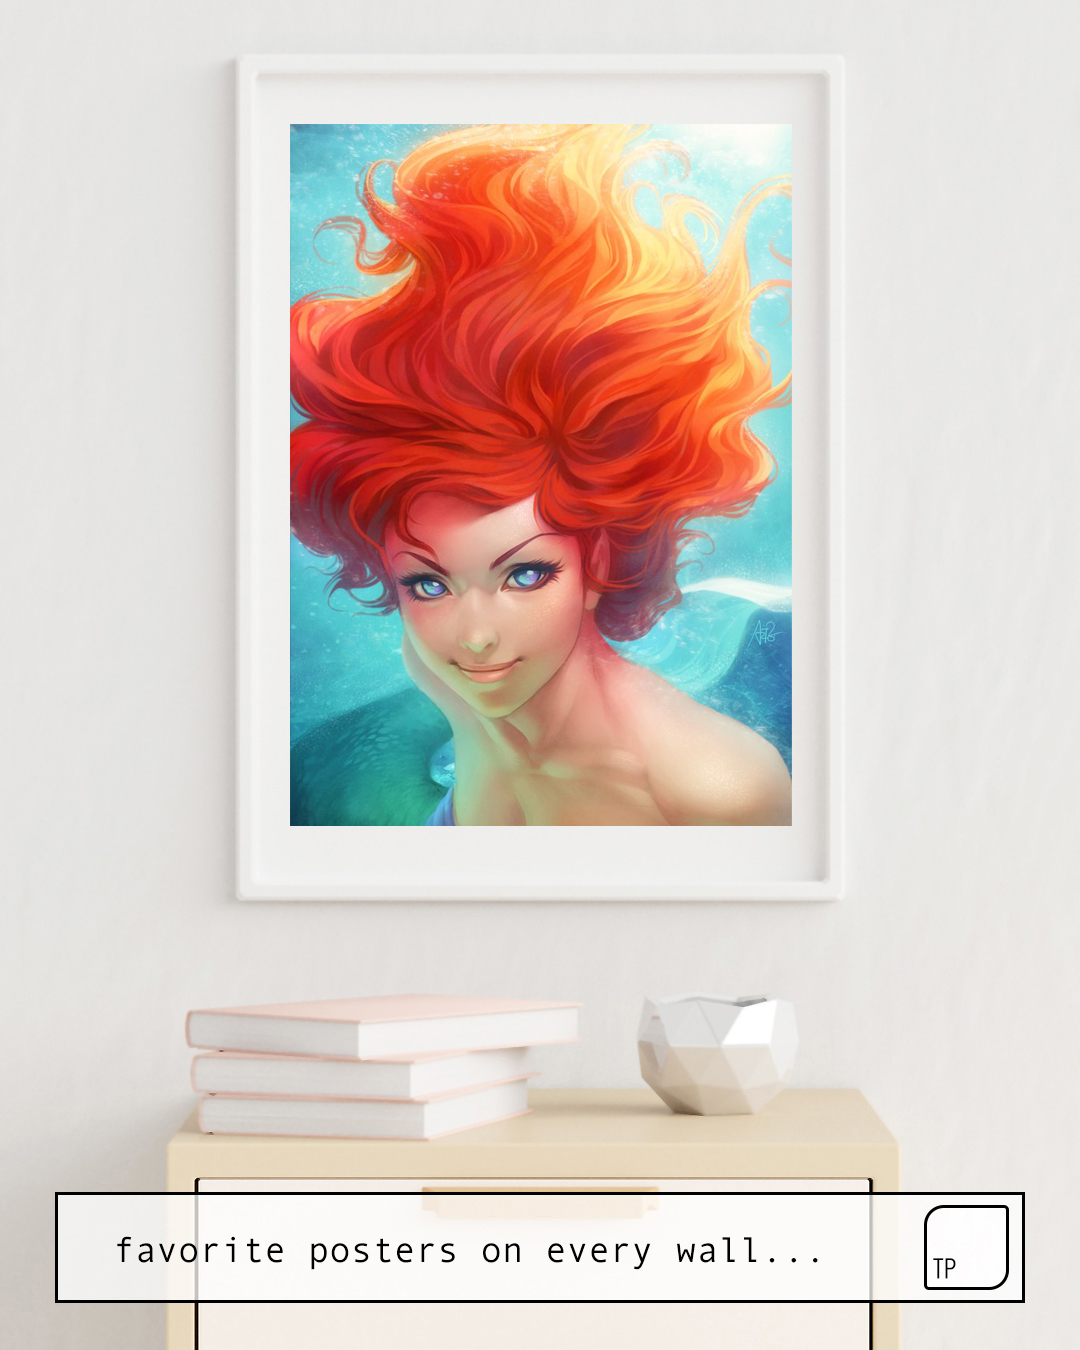 The photo shows an example of furnishing with the motif UNDER THE SEA by Stanley Artgerm Lau as mural